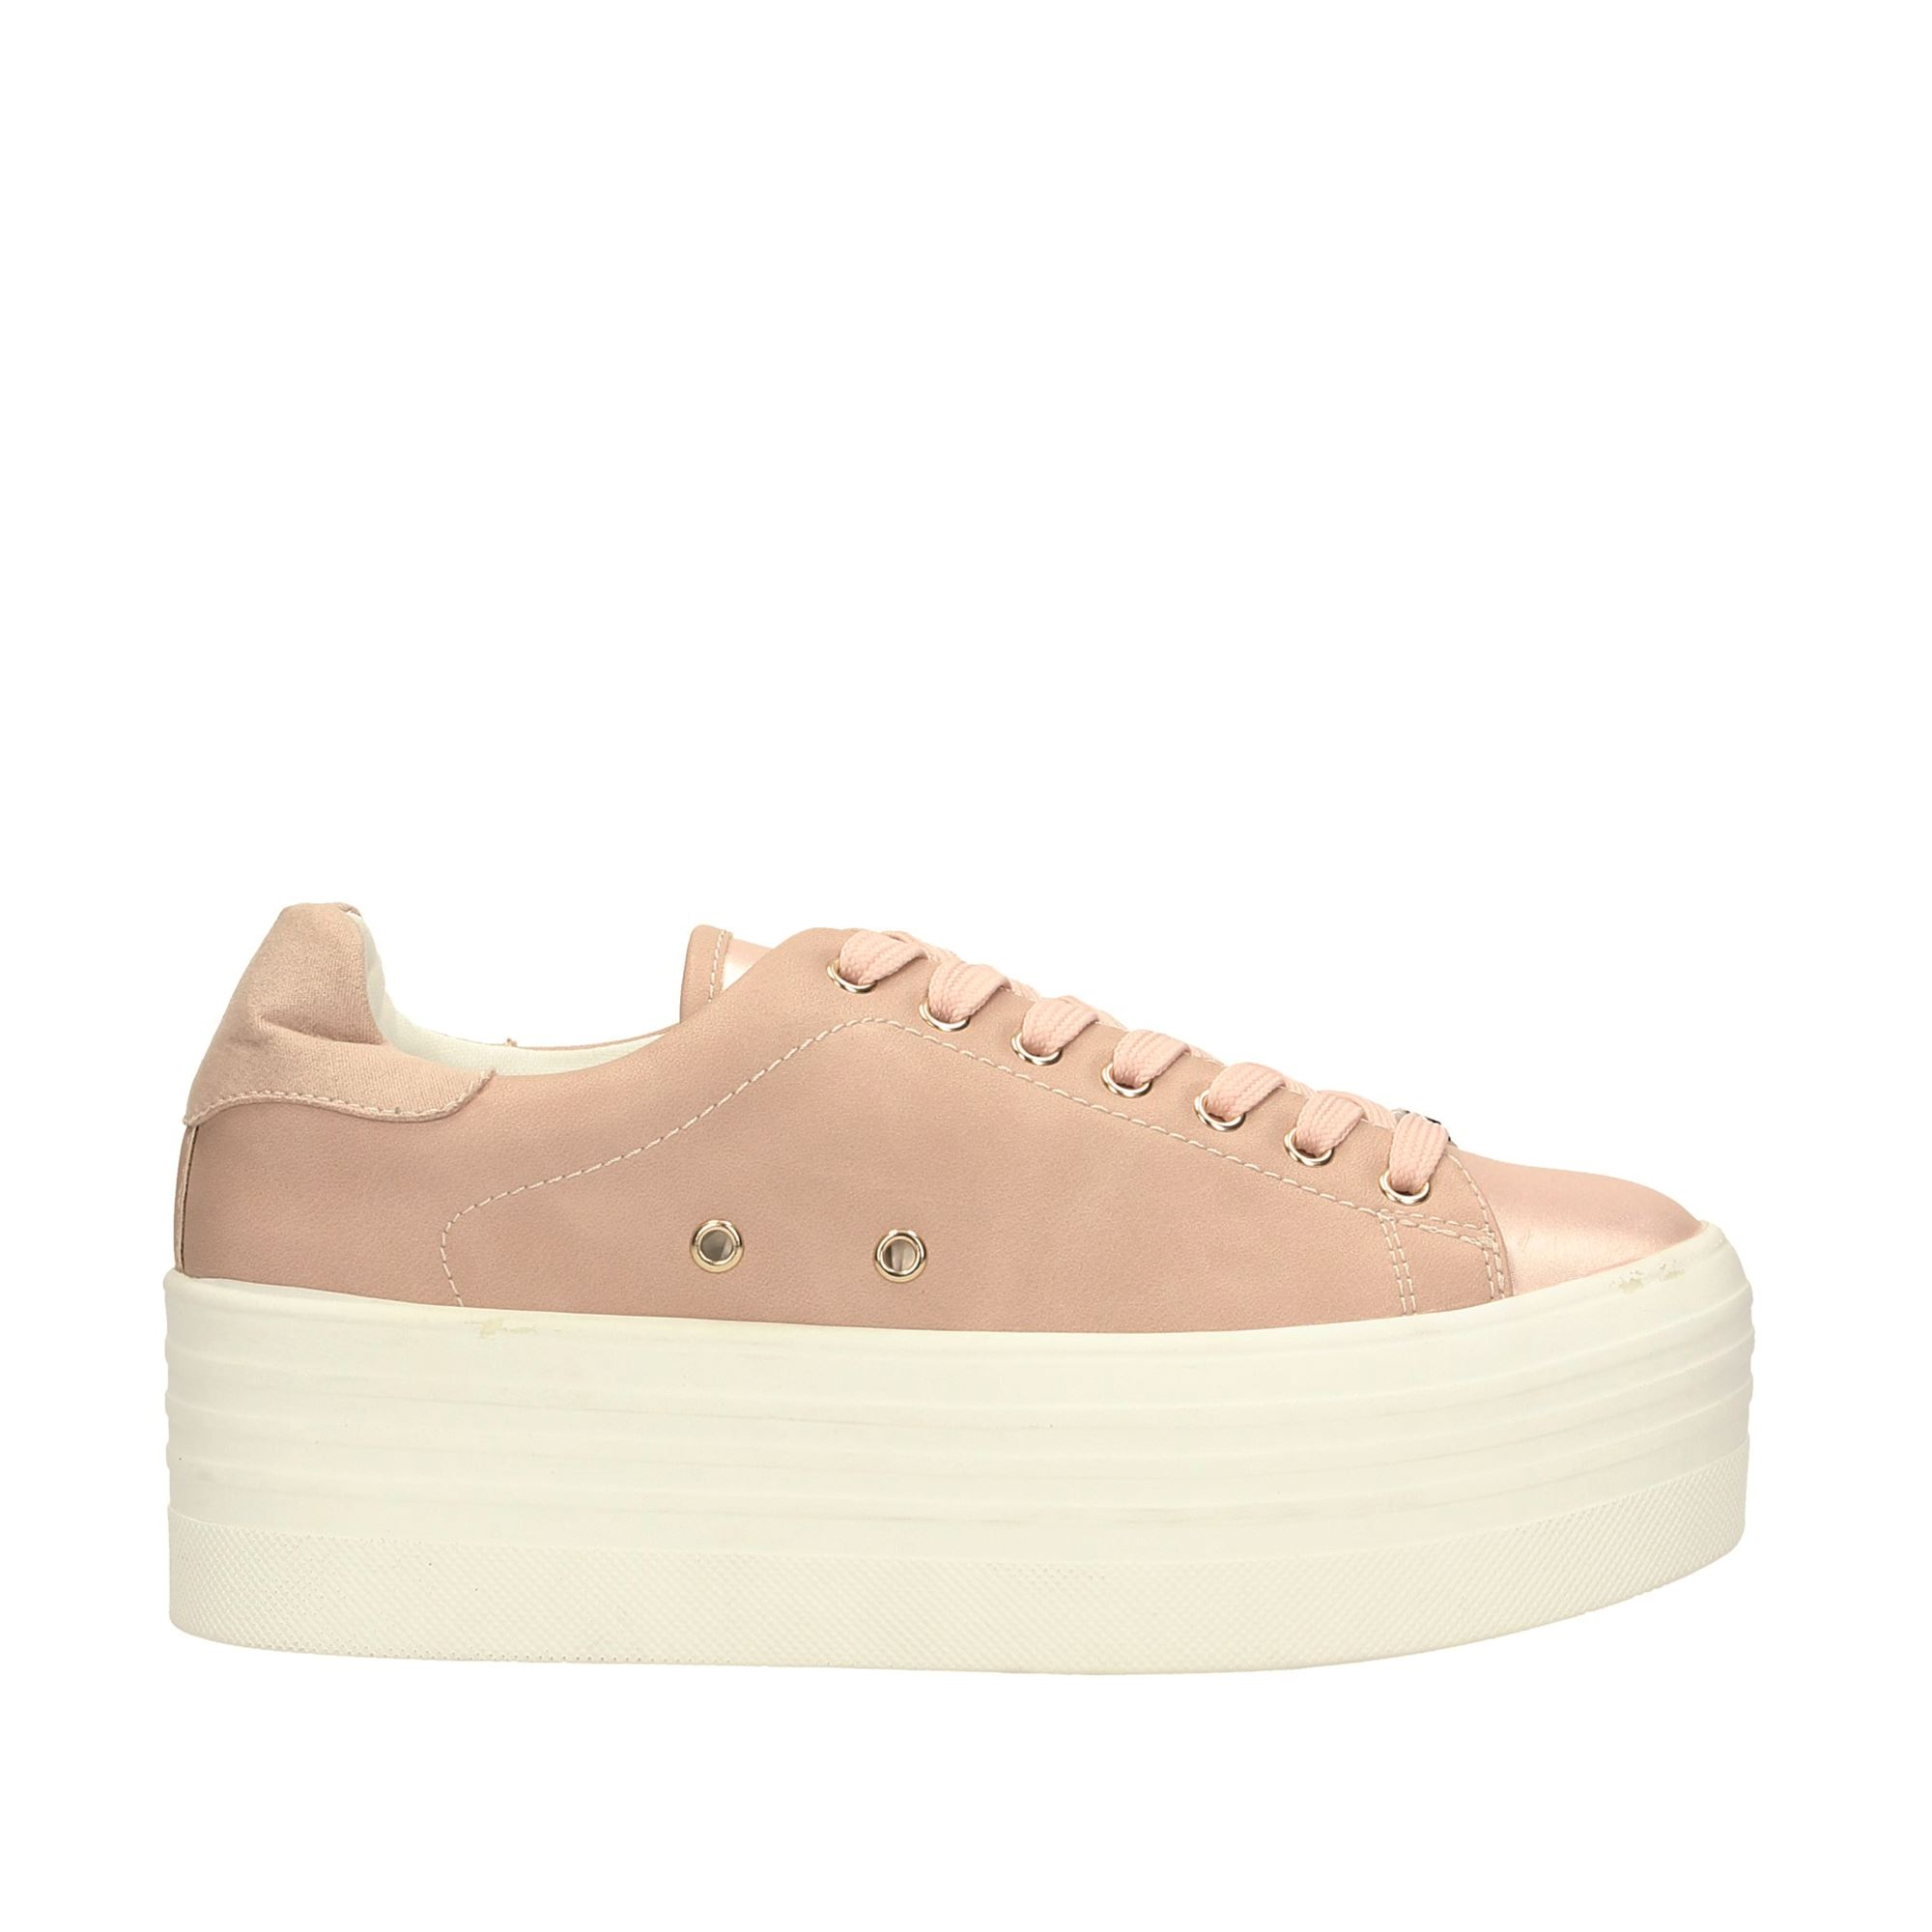 Tata Italia Shoes Woman Sneakers Pink TA9A15-2